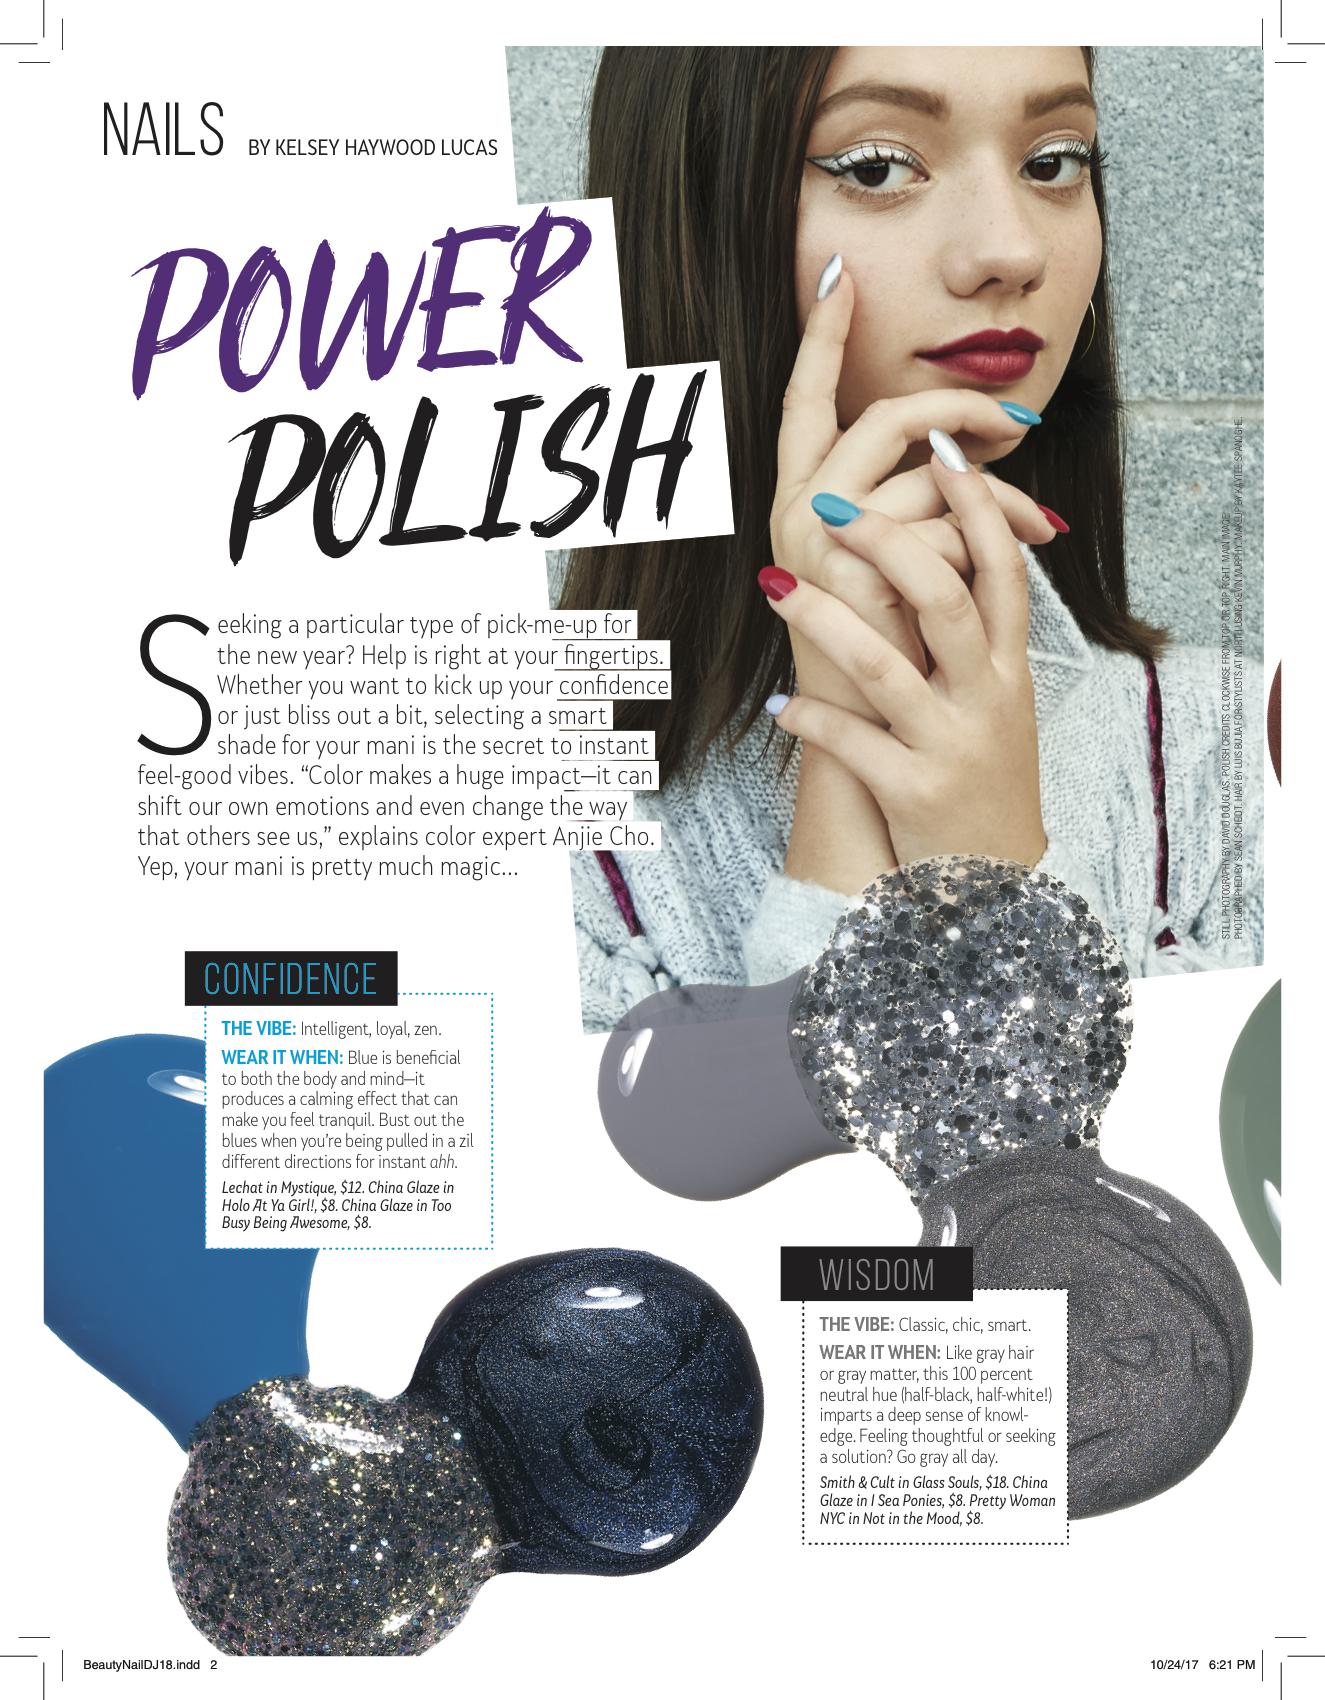 GirlsLife - Power Polish.jpg